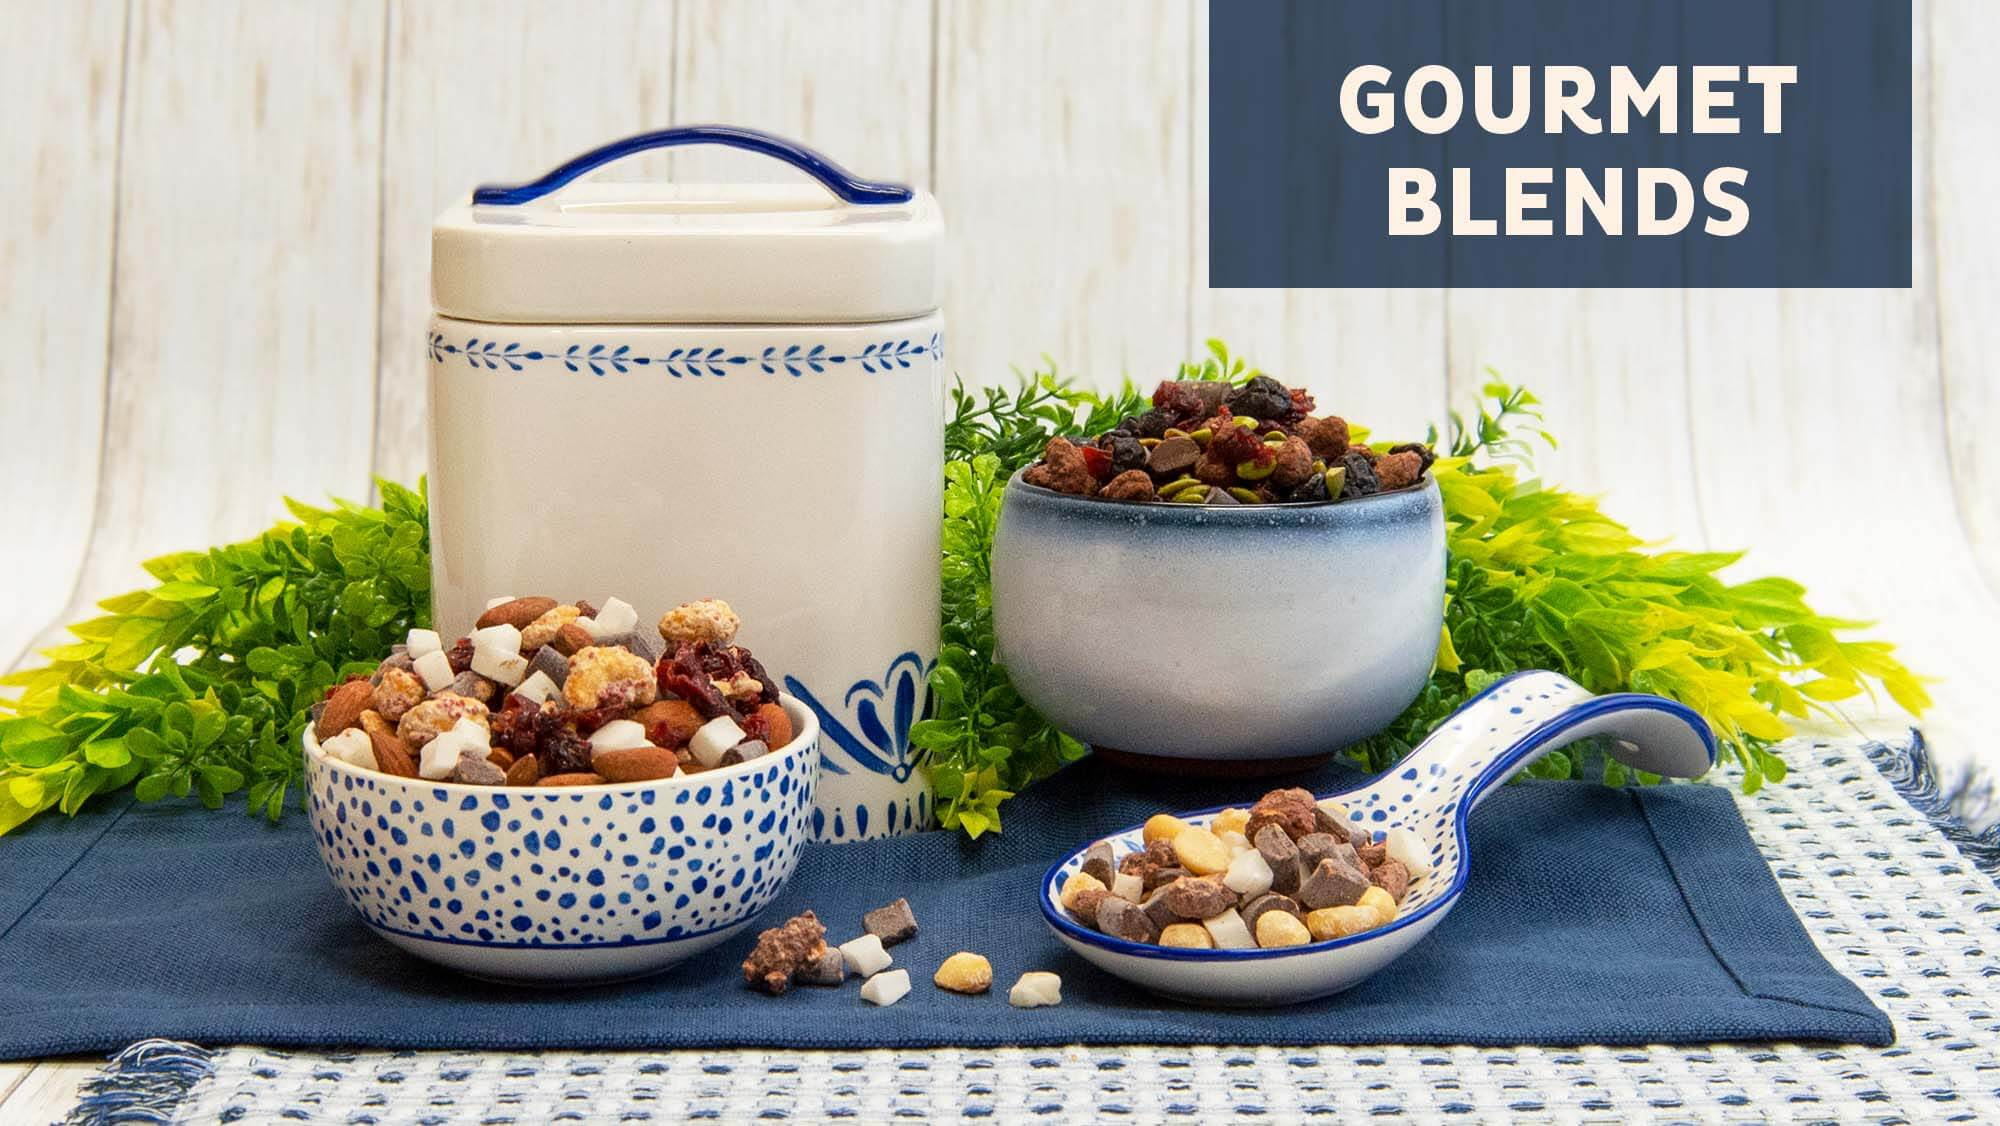 A beauty image of our gourmet trail mix blends